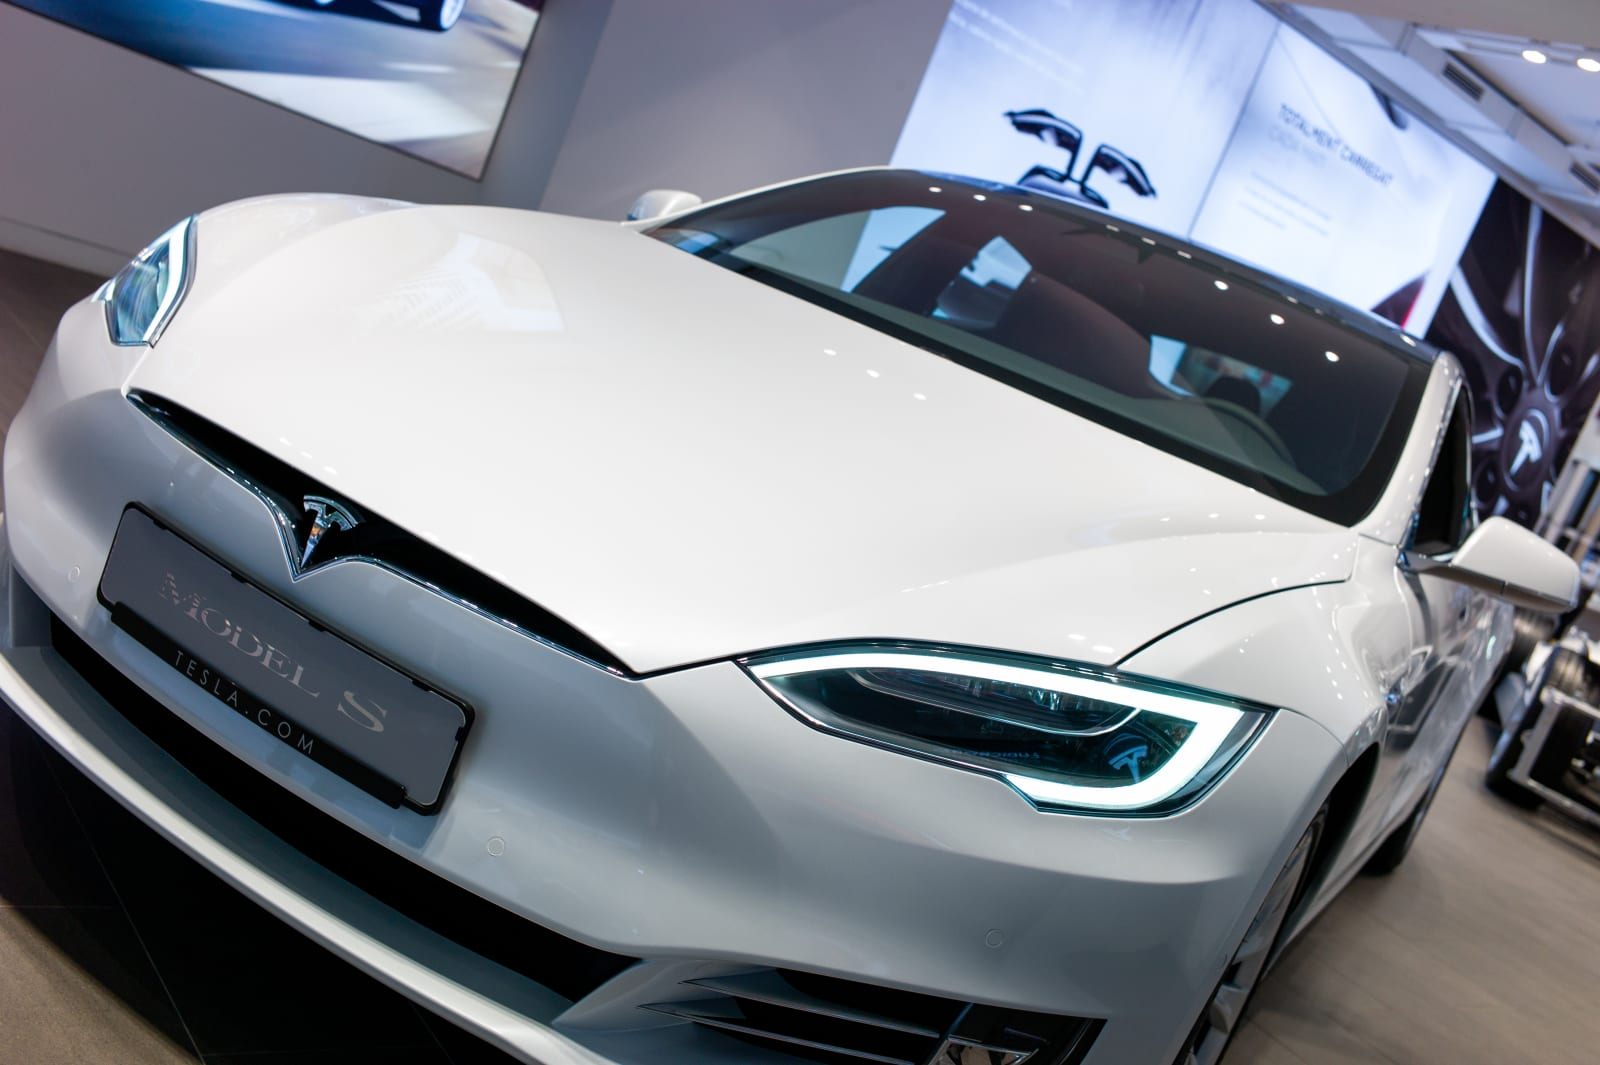 Tesla raises base prices for Model S and Model X